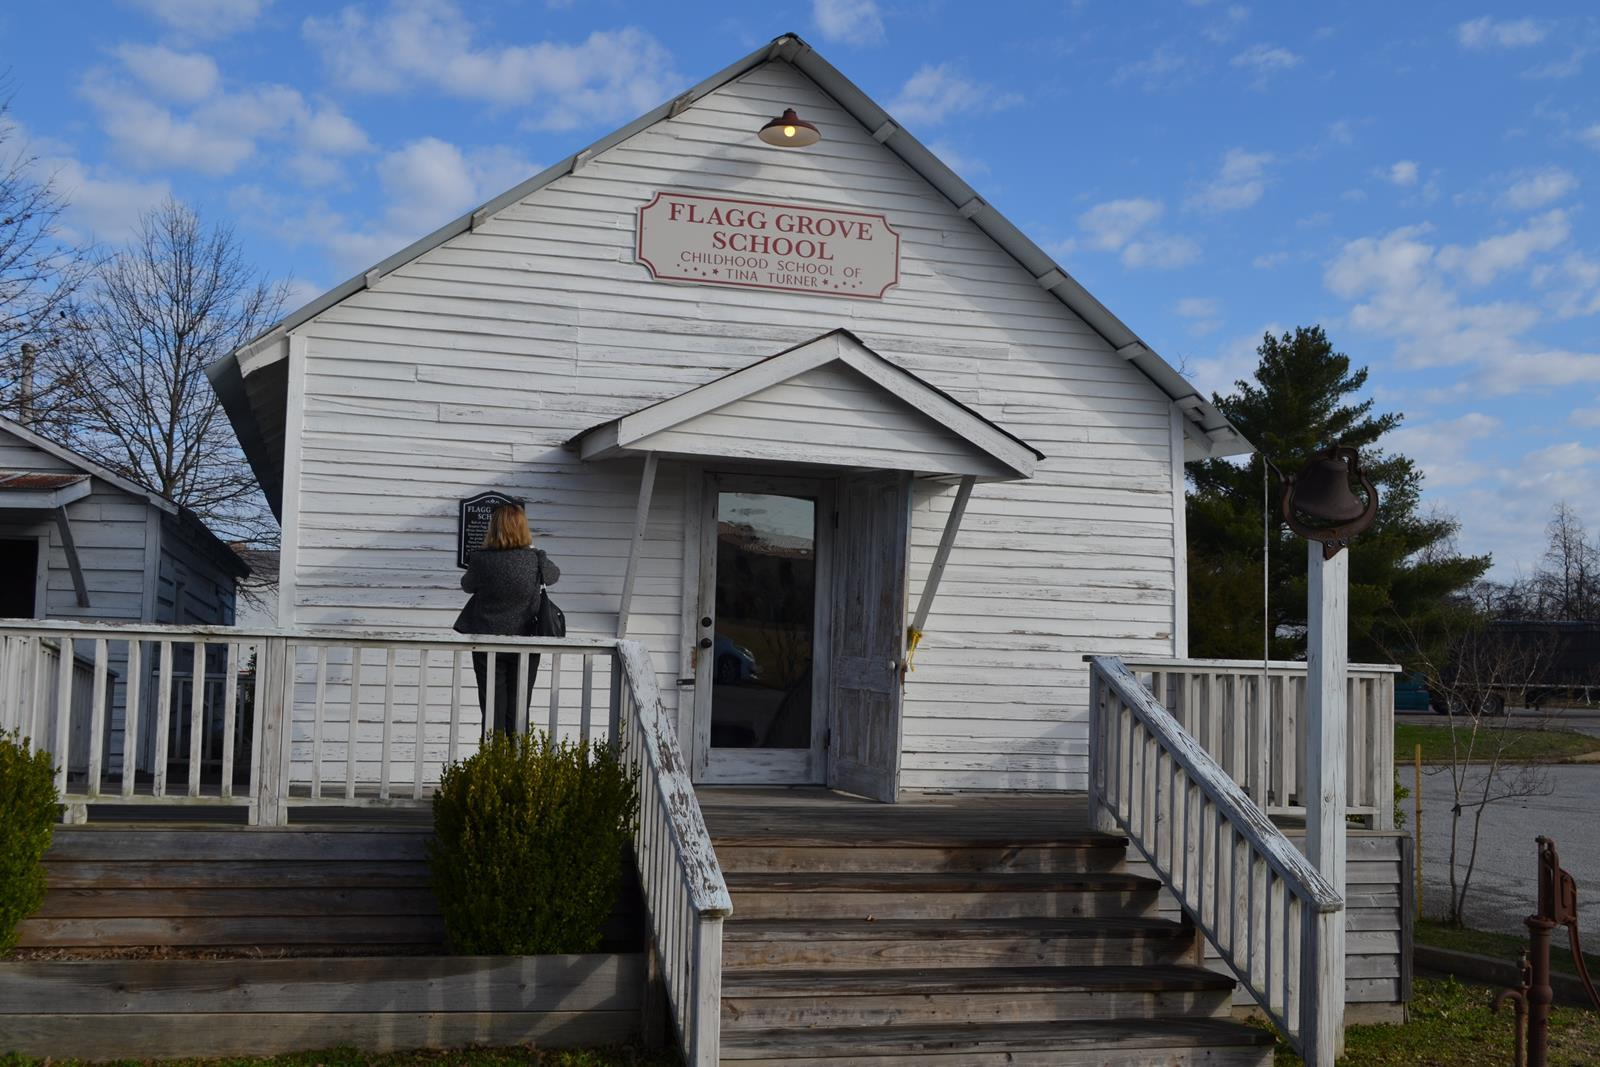 Singer Tina Turner's childhood school is part of the West Tennessee Delta Heritage Center in Brownsville